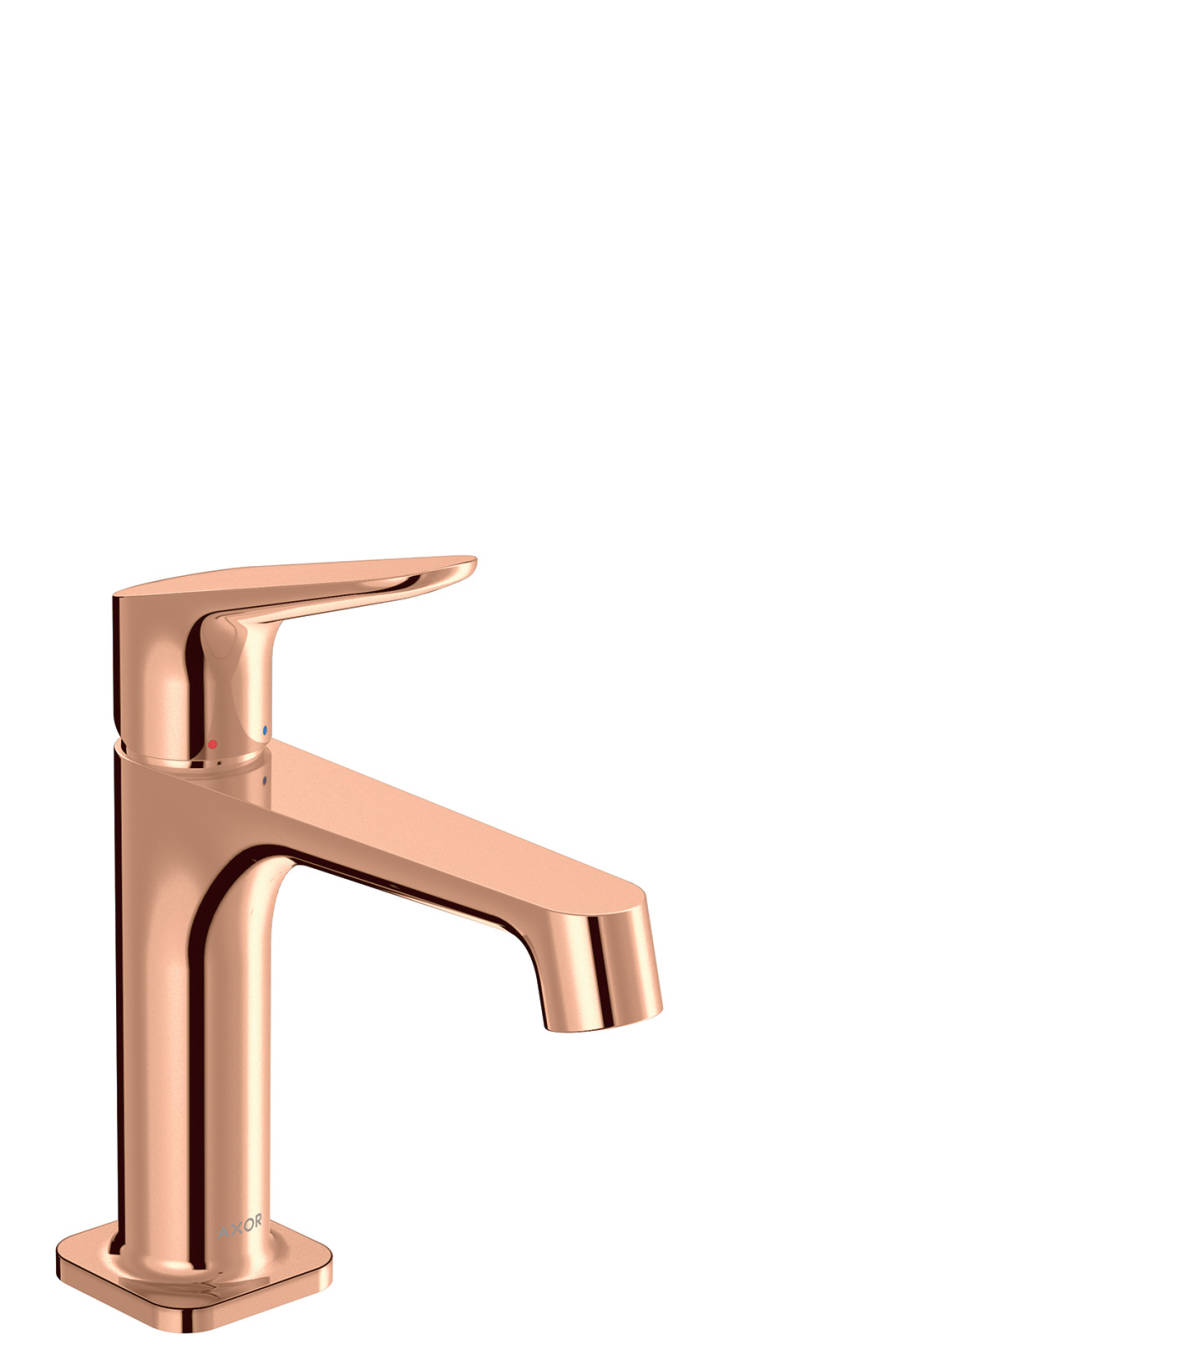 Single lever basin mixer 100 with waste set, Polished Red Gold, 34017300